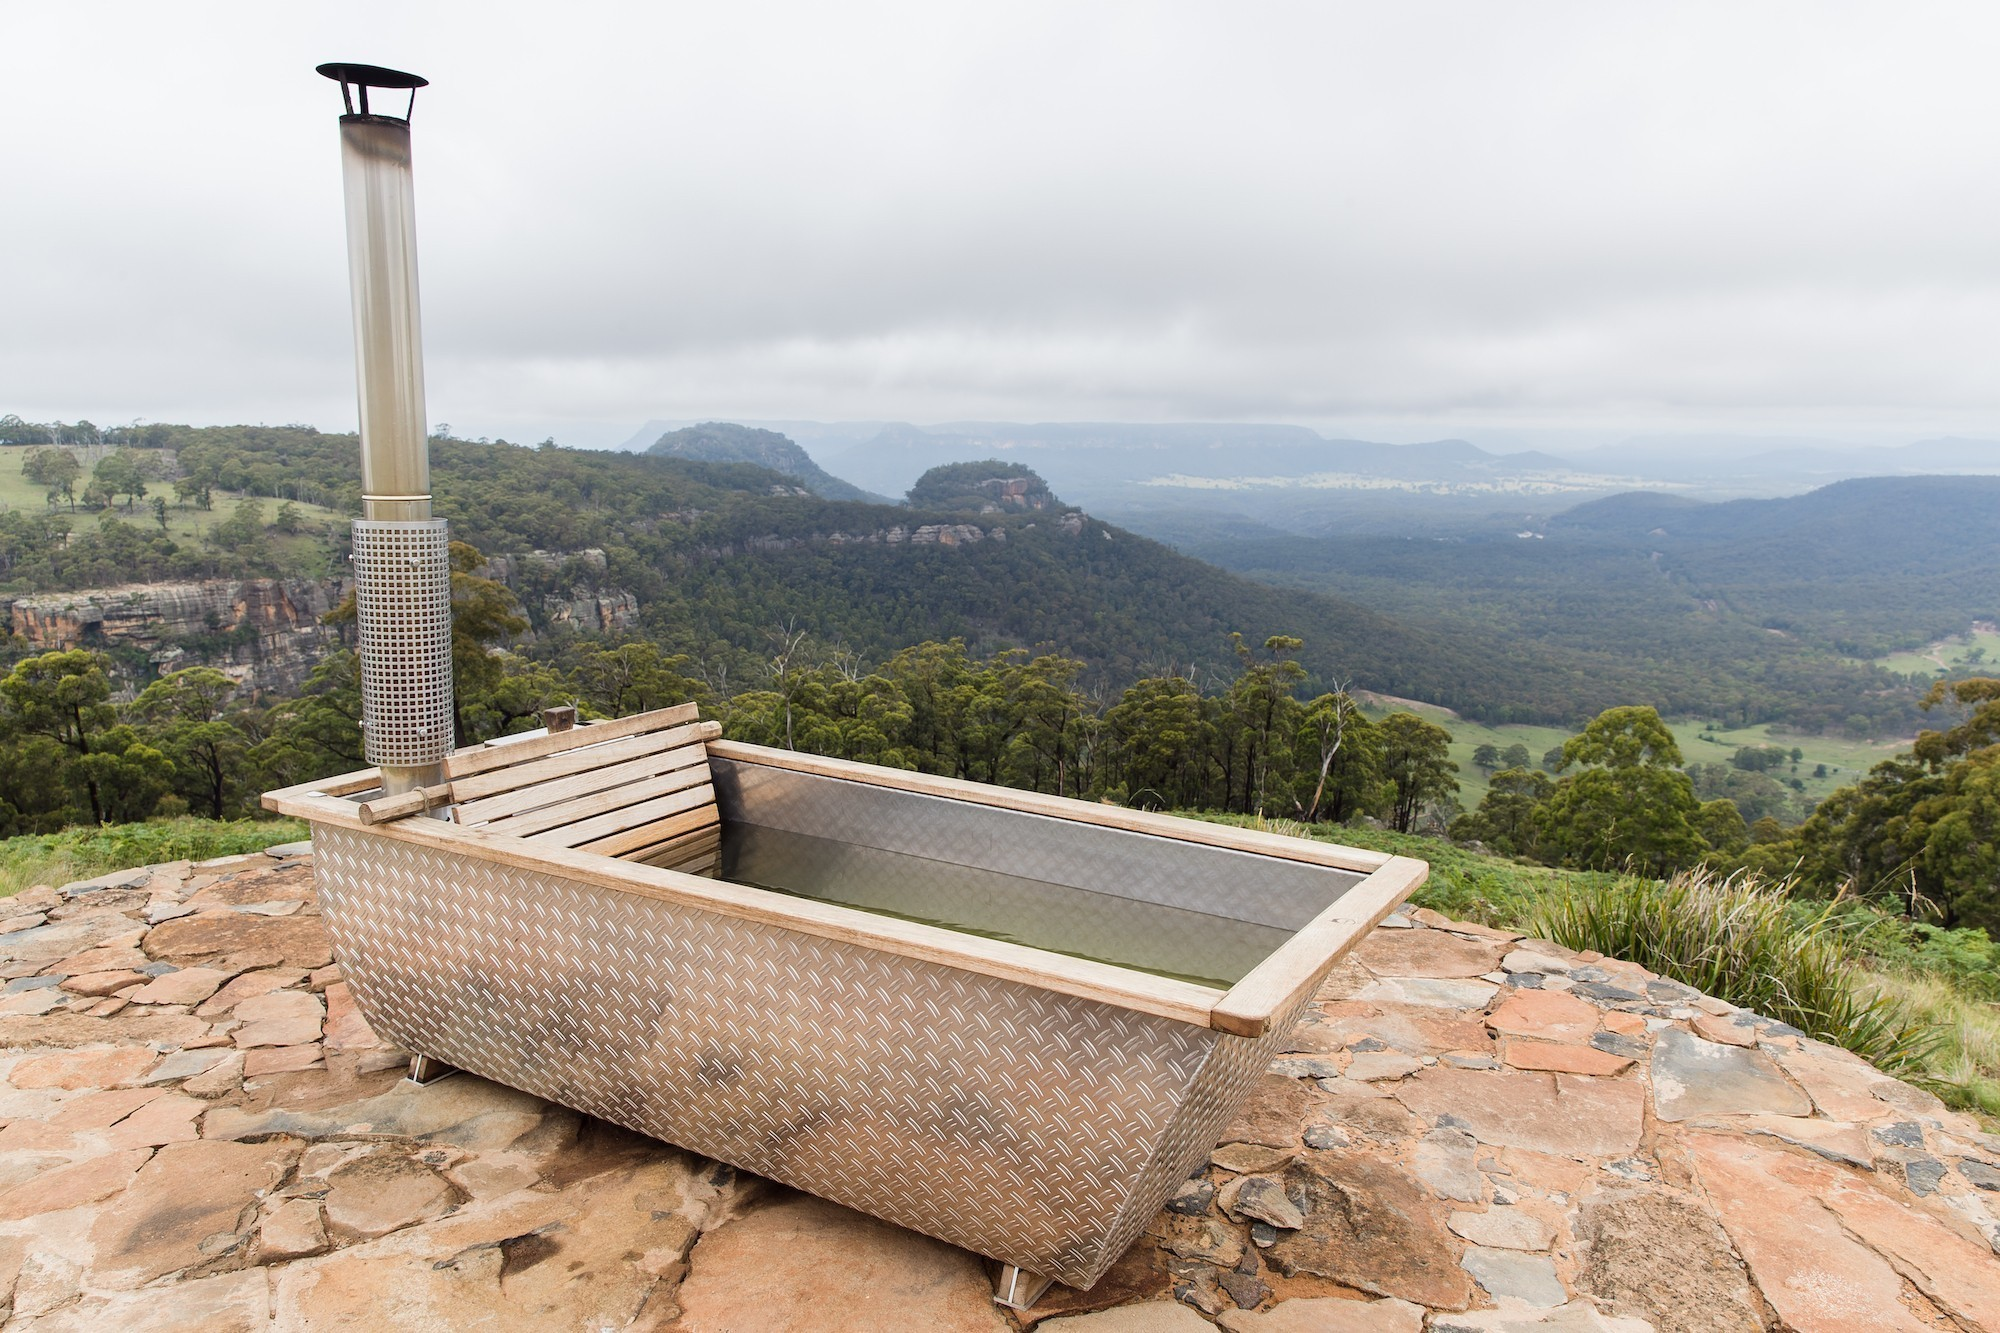 Bubbletent Australia | Bathtubs worth travelling for